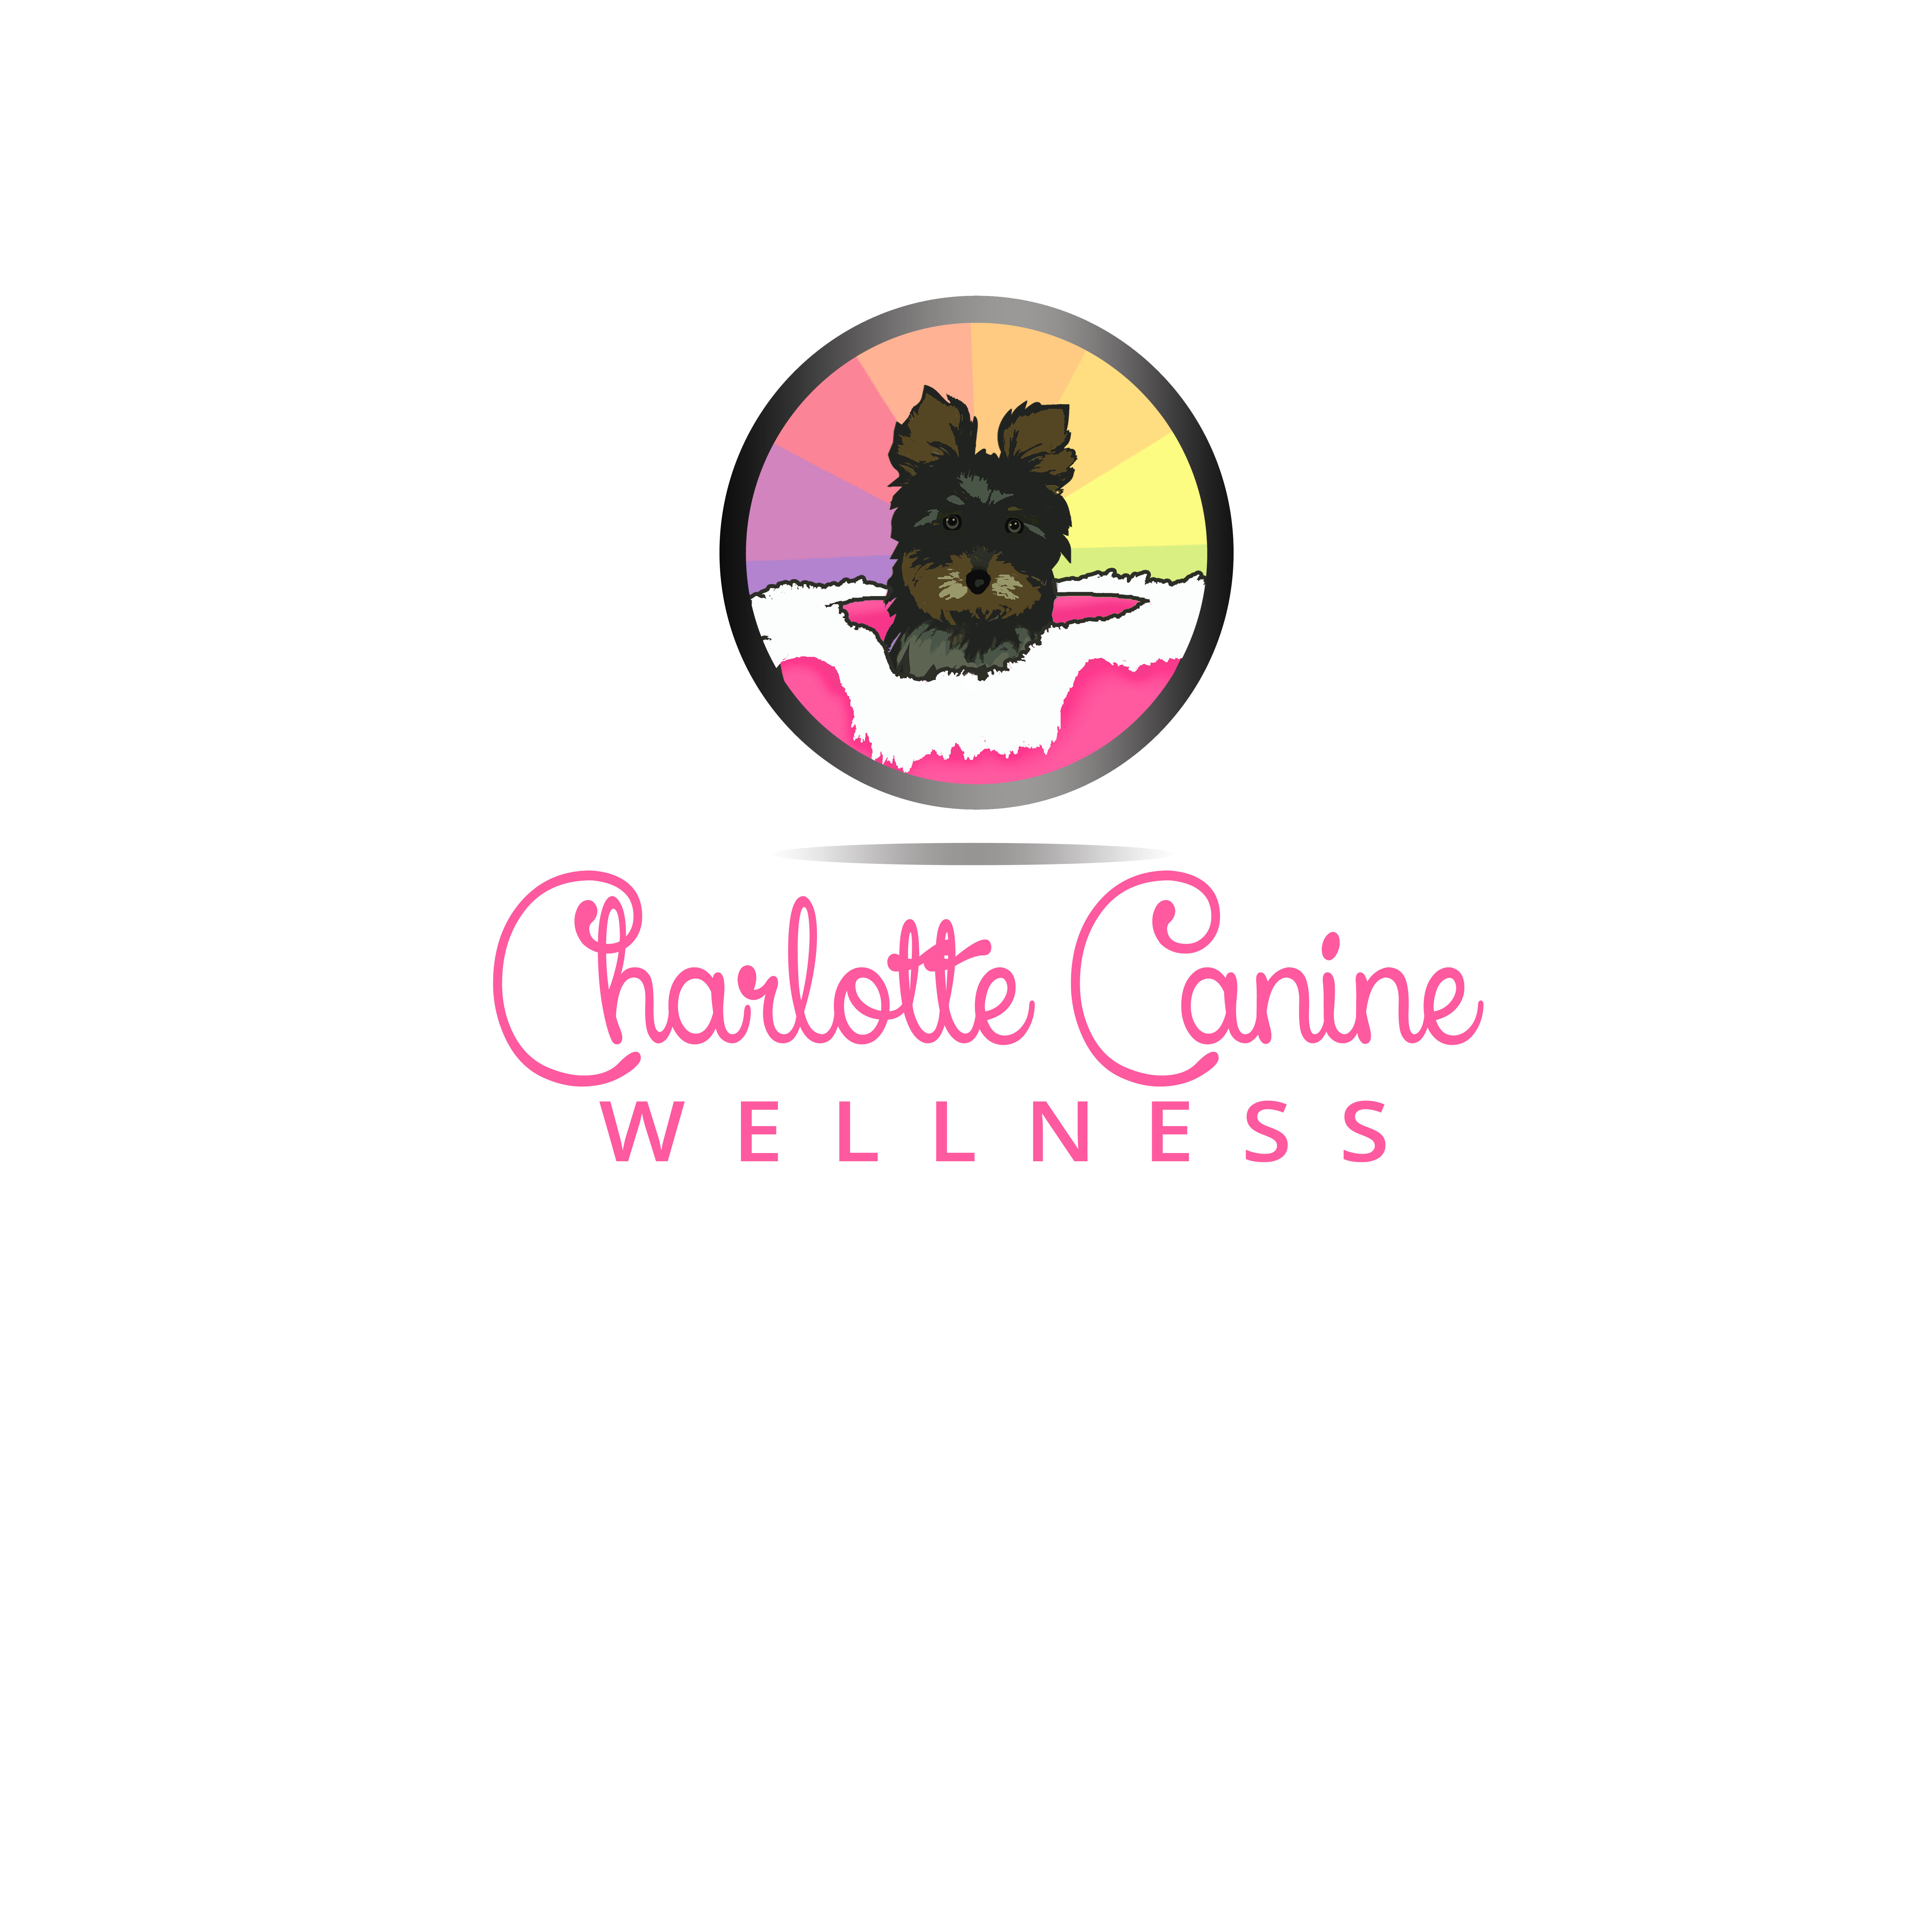 Logo Design by Allan Esclamado - Entry No. 91 in the Logo Design Contest New Logo Design for Charlotte Canine Wellness.